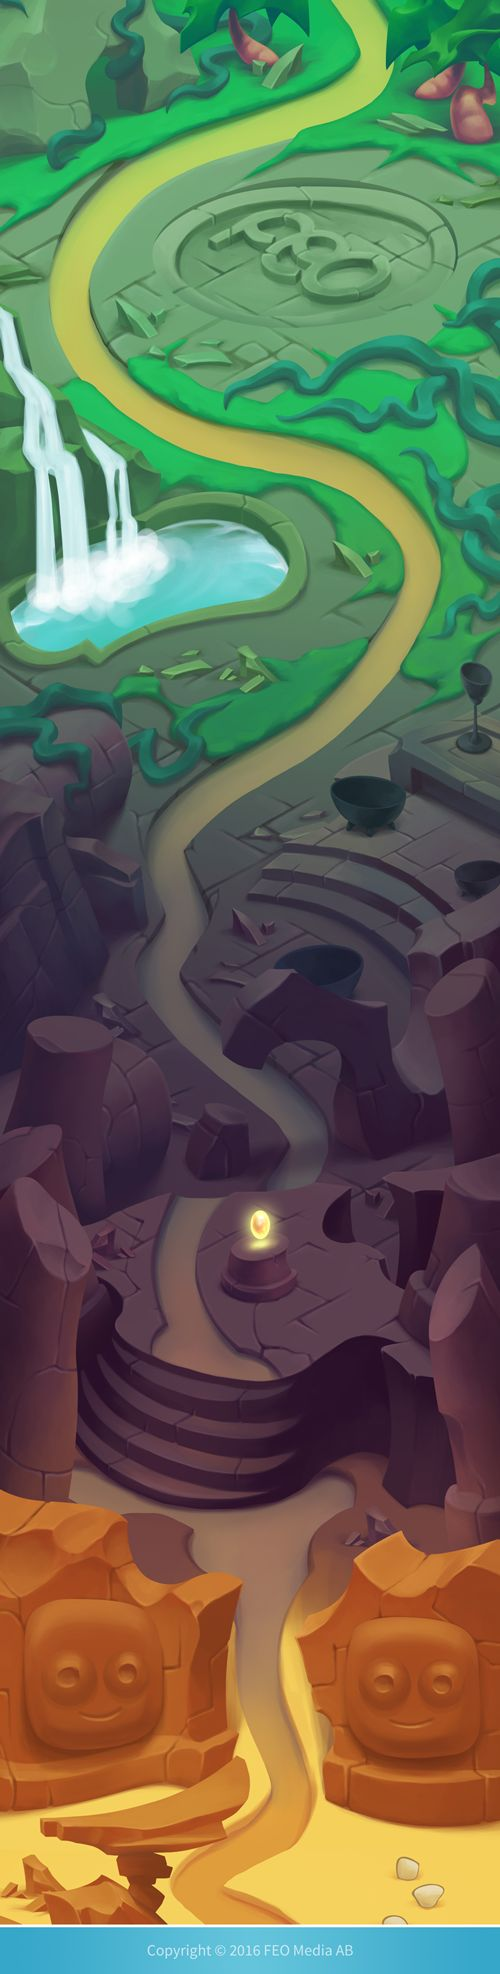 Level maps for Crozzles on Behance